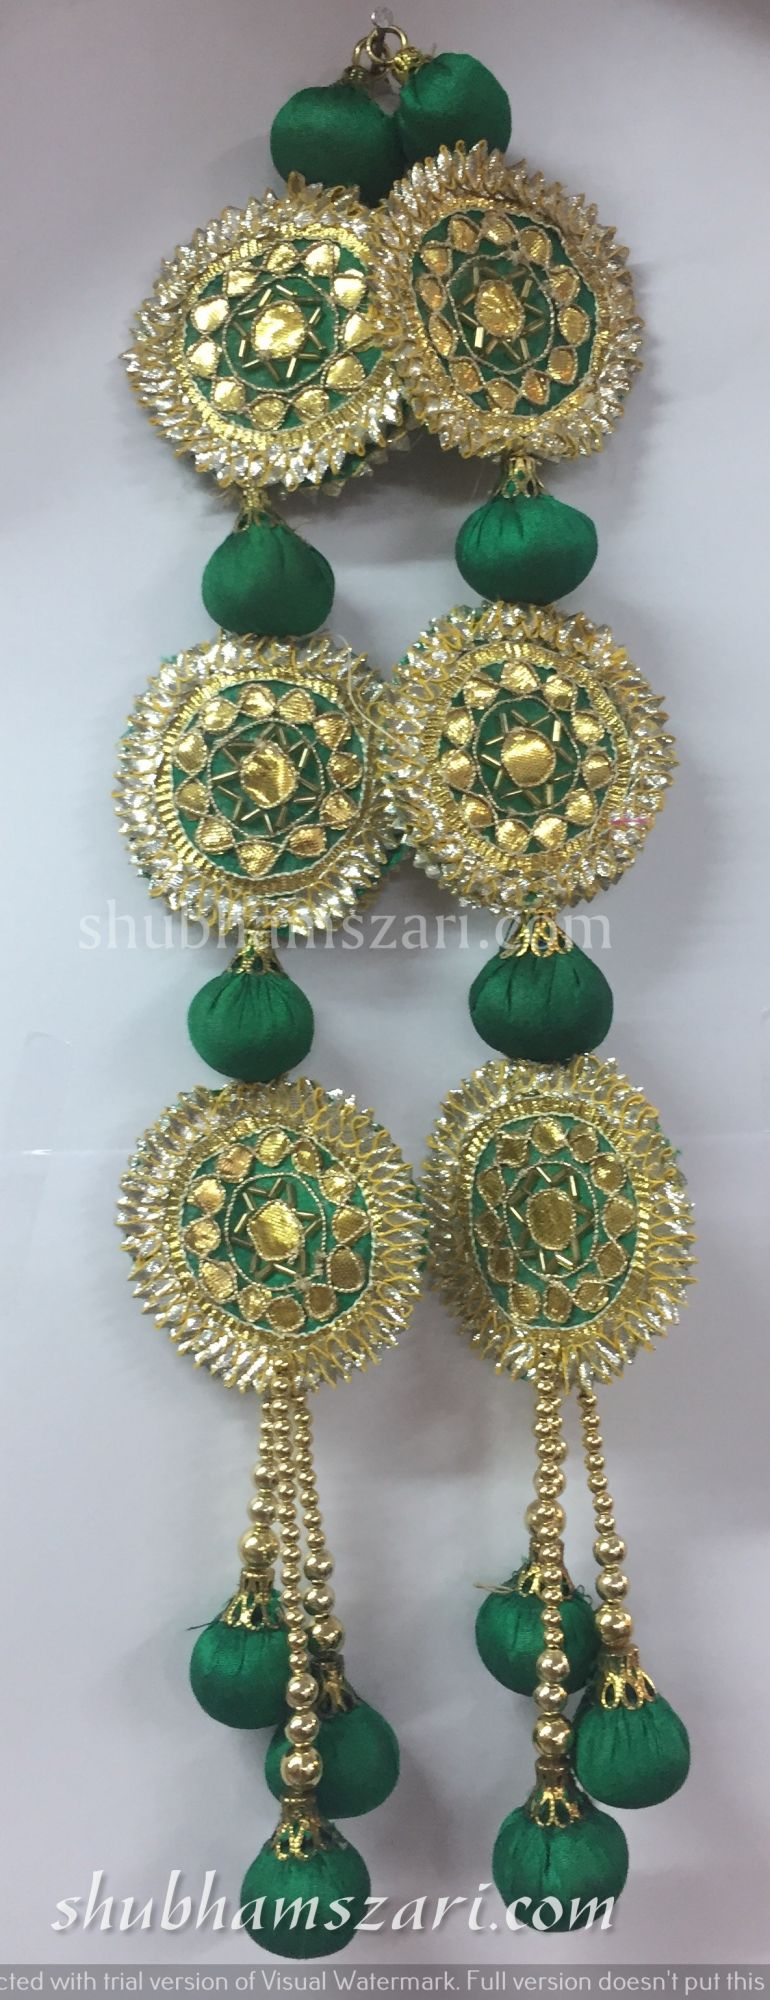 Shubhams long green colour full round sikka shape gota patti work